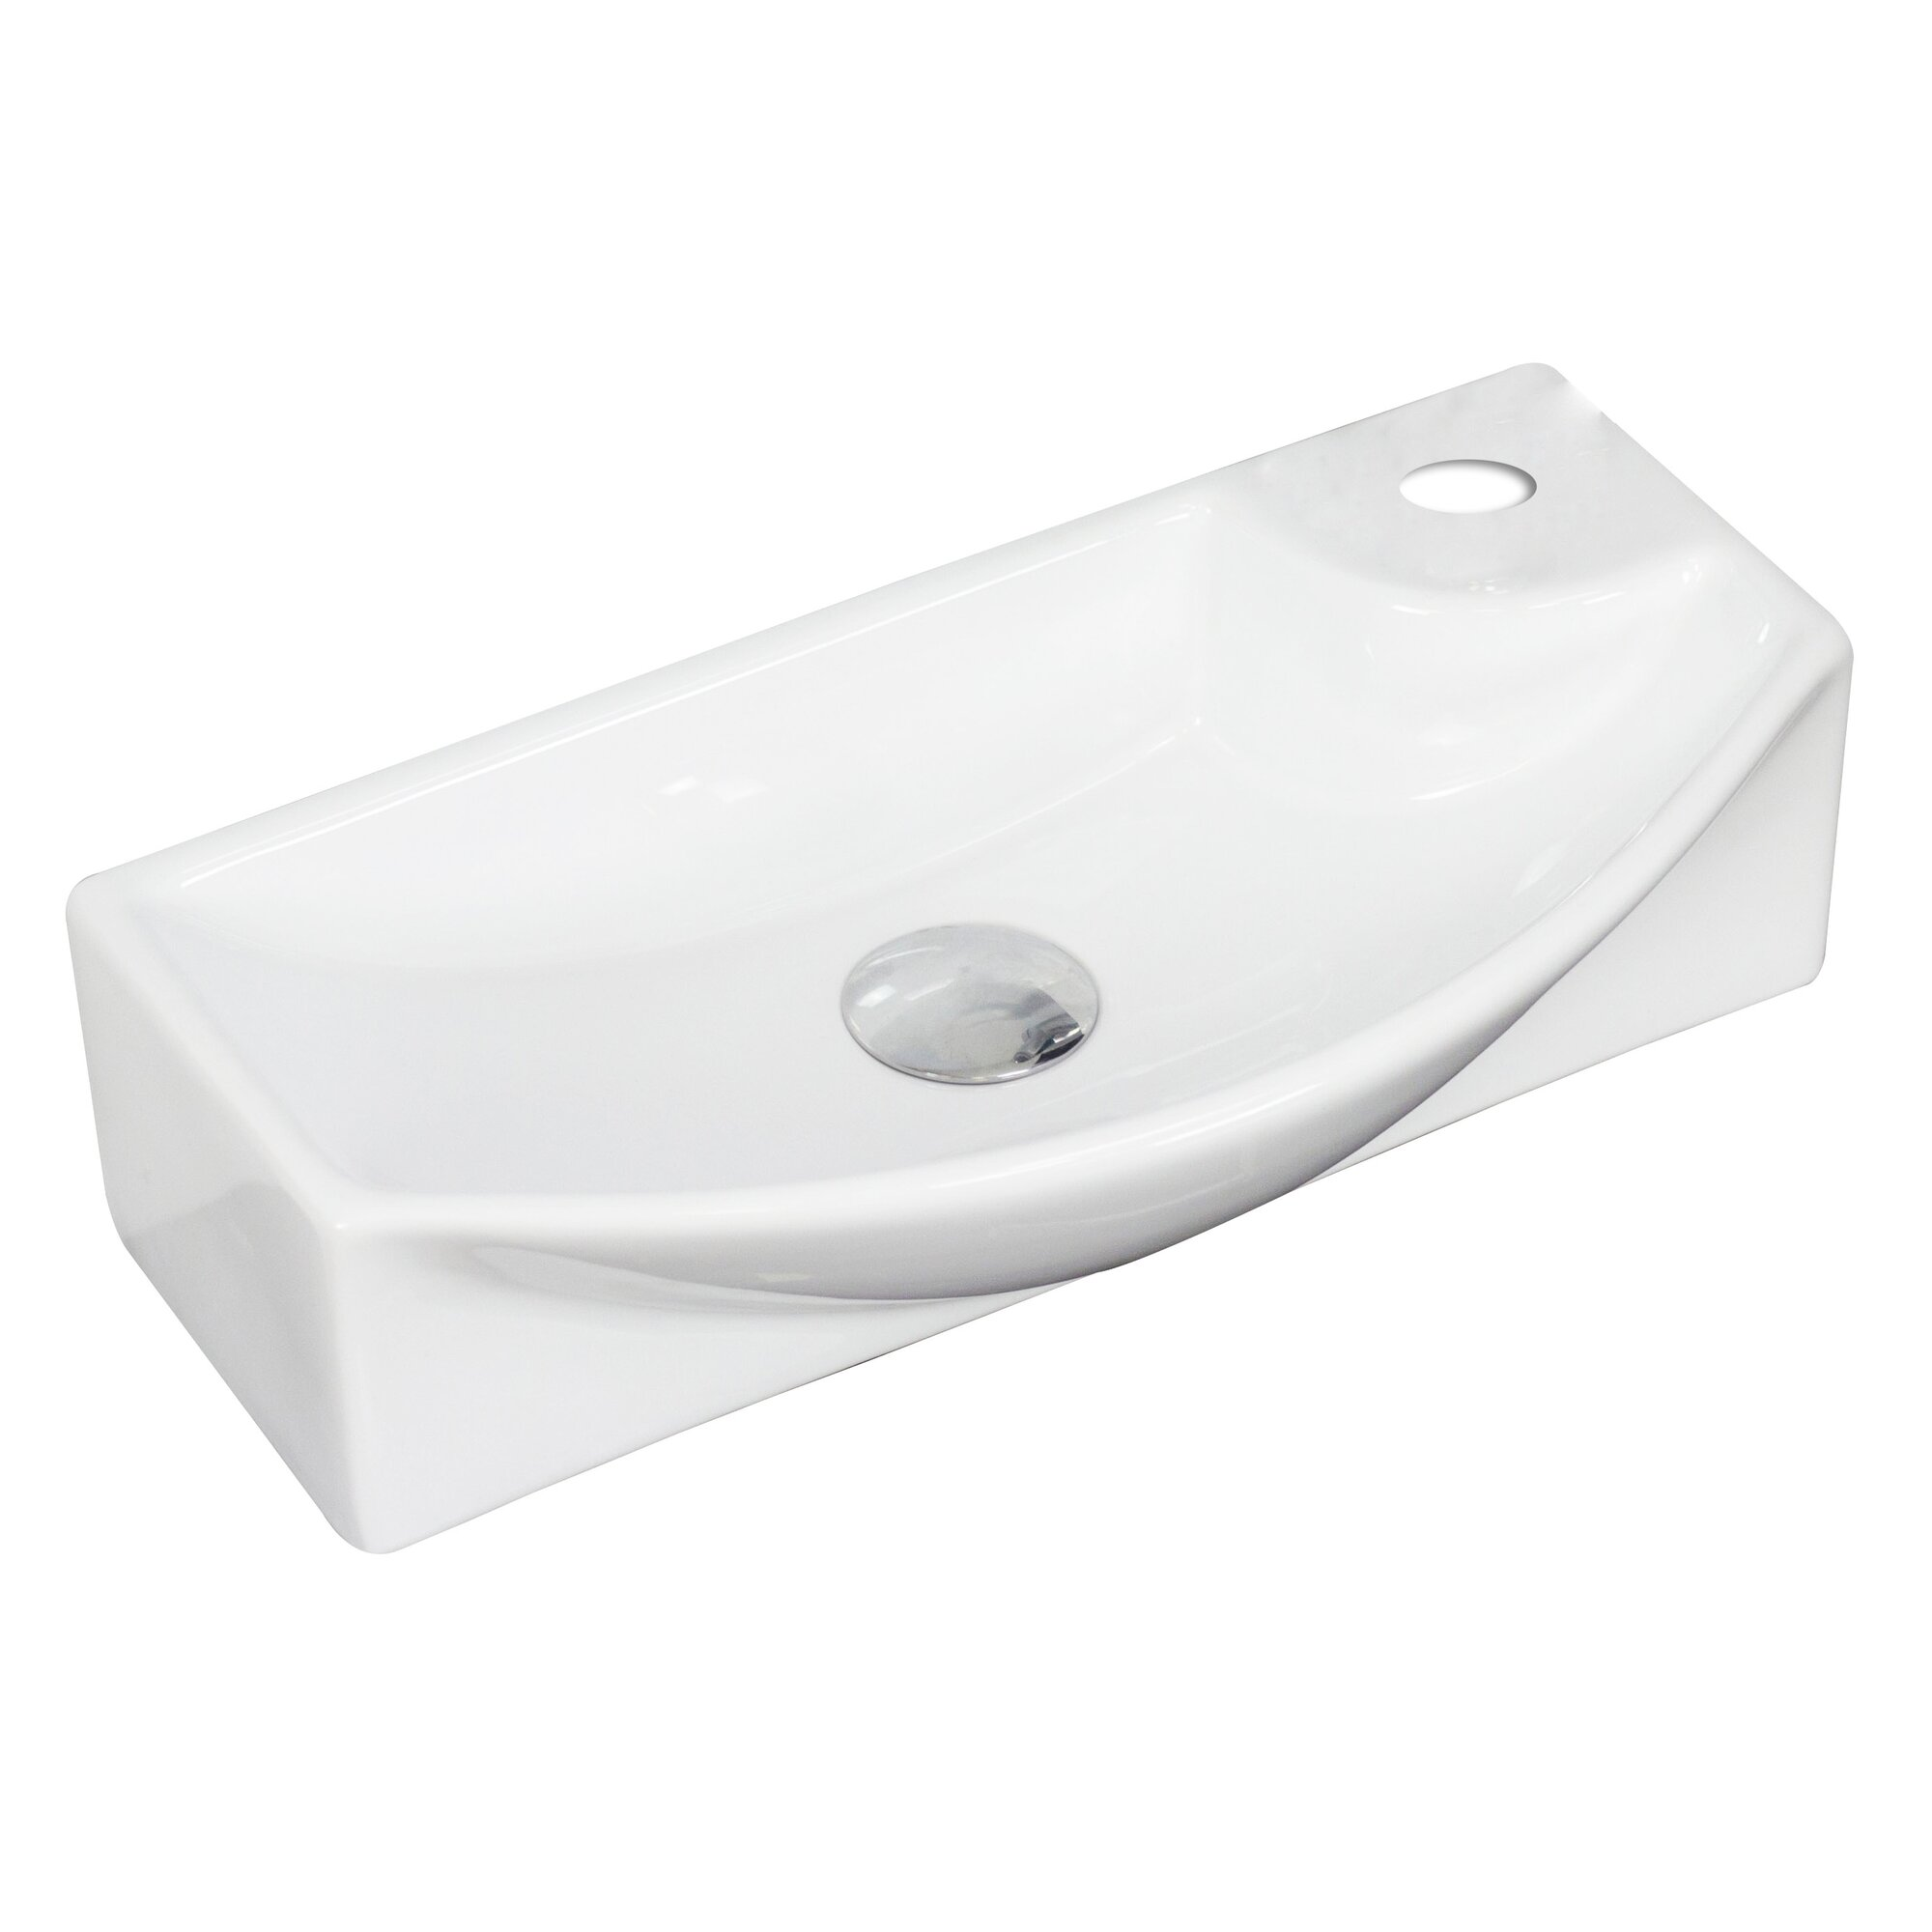 American imaginations above counter 19 wall mount bathroom sink for Above counter bathroom sinks glass